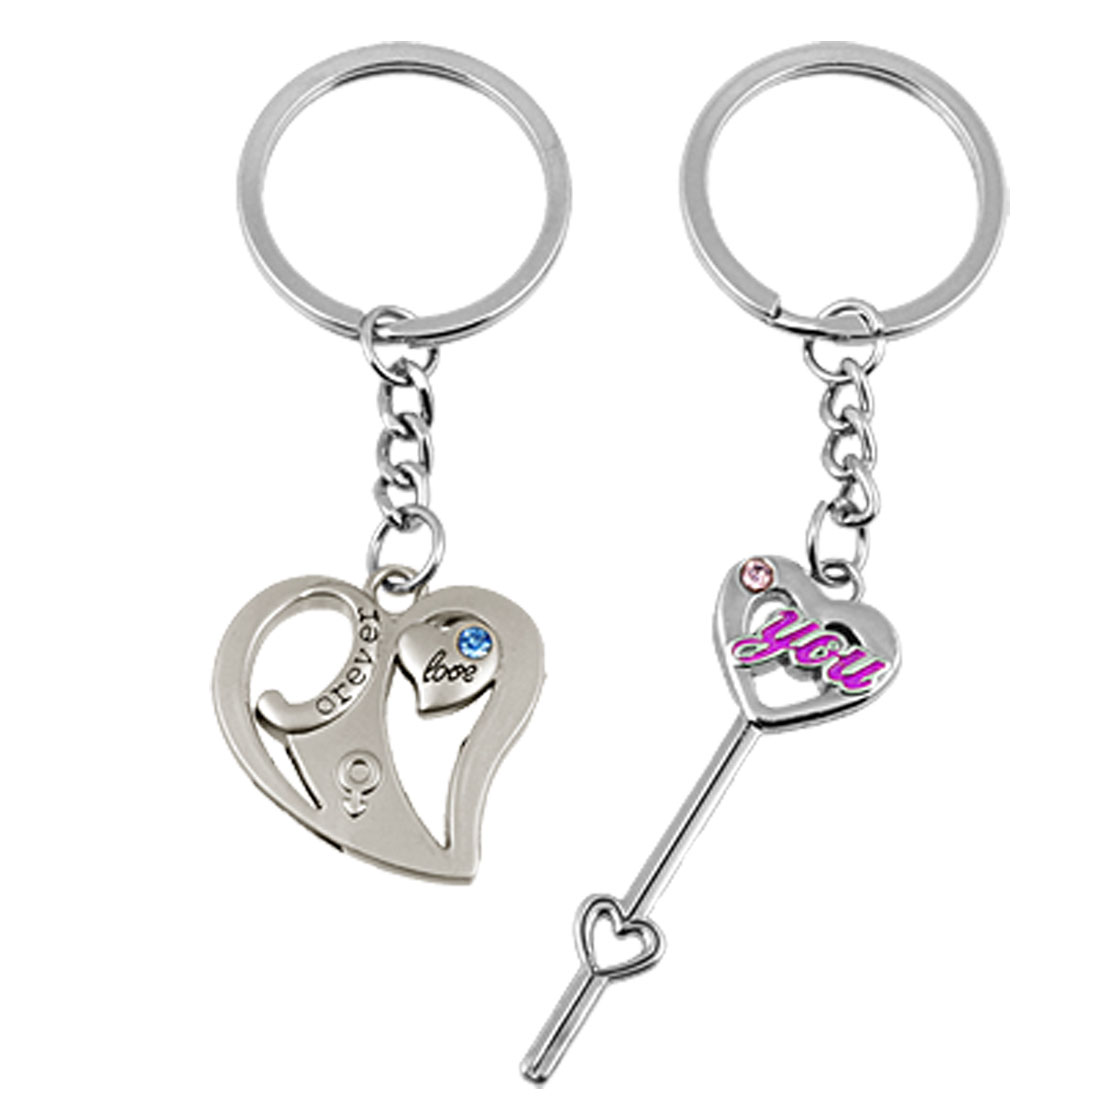 2 Pcs Couple Love Arrow Key Chain Dual Heart Keychain